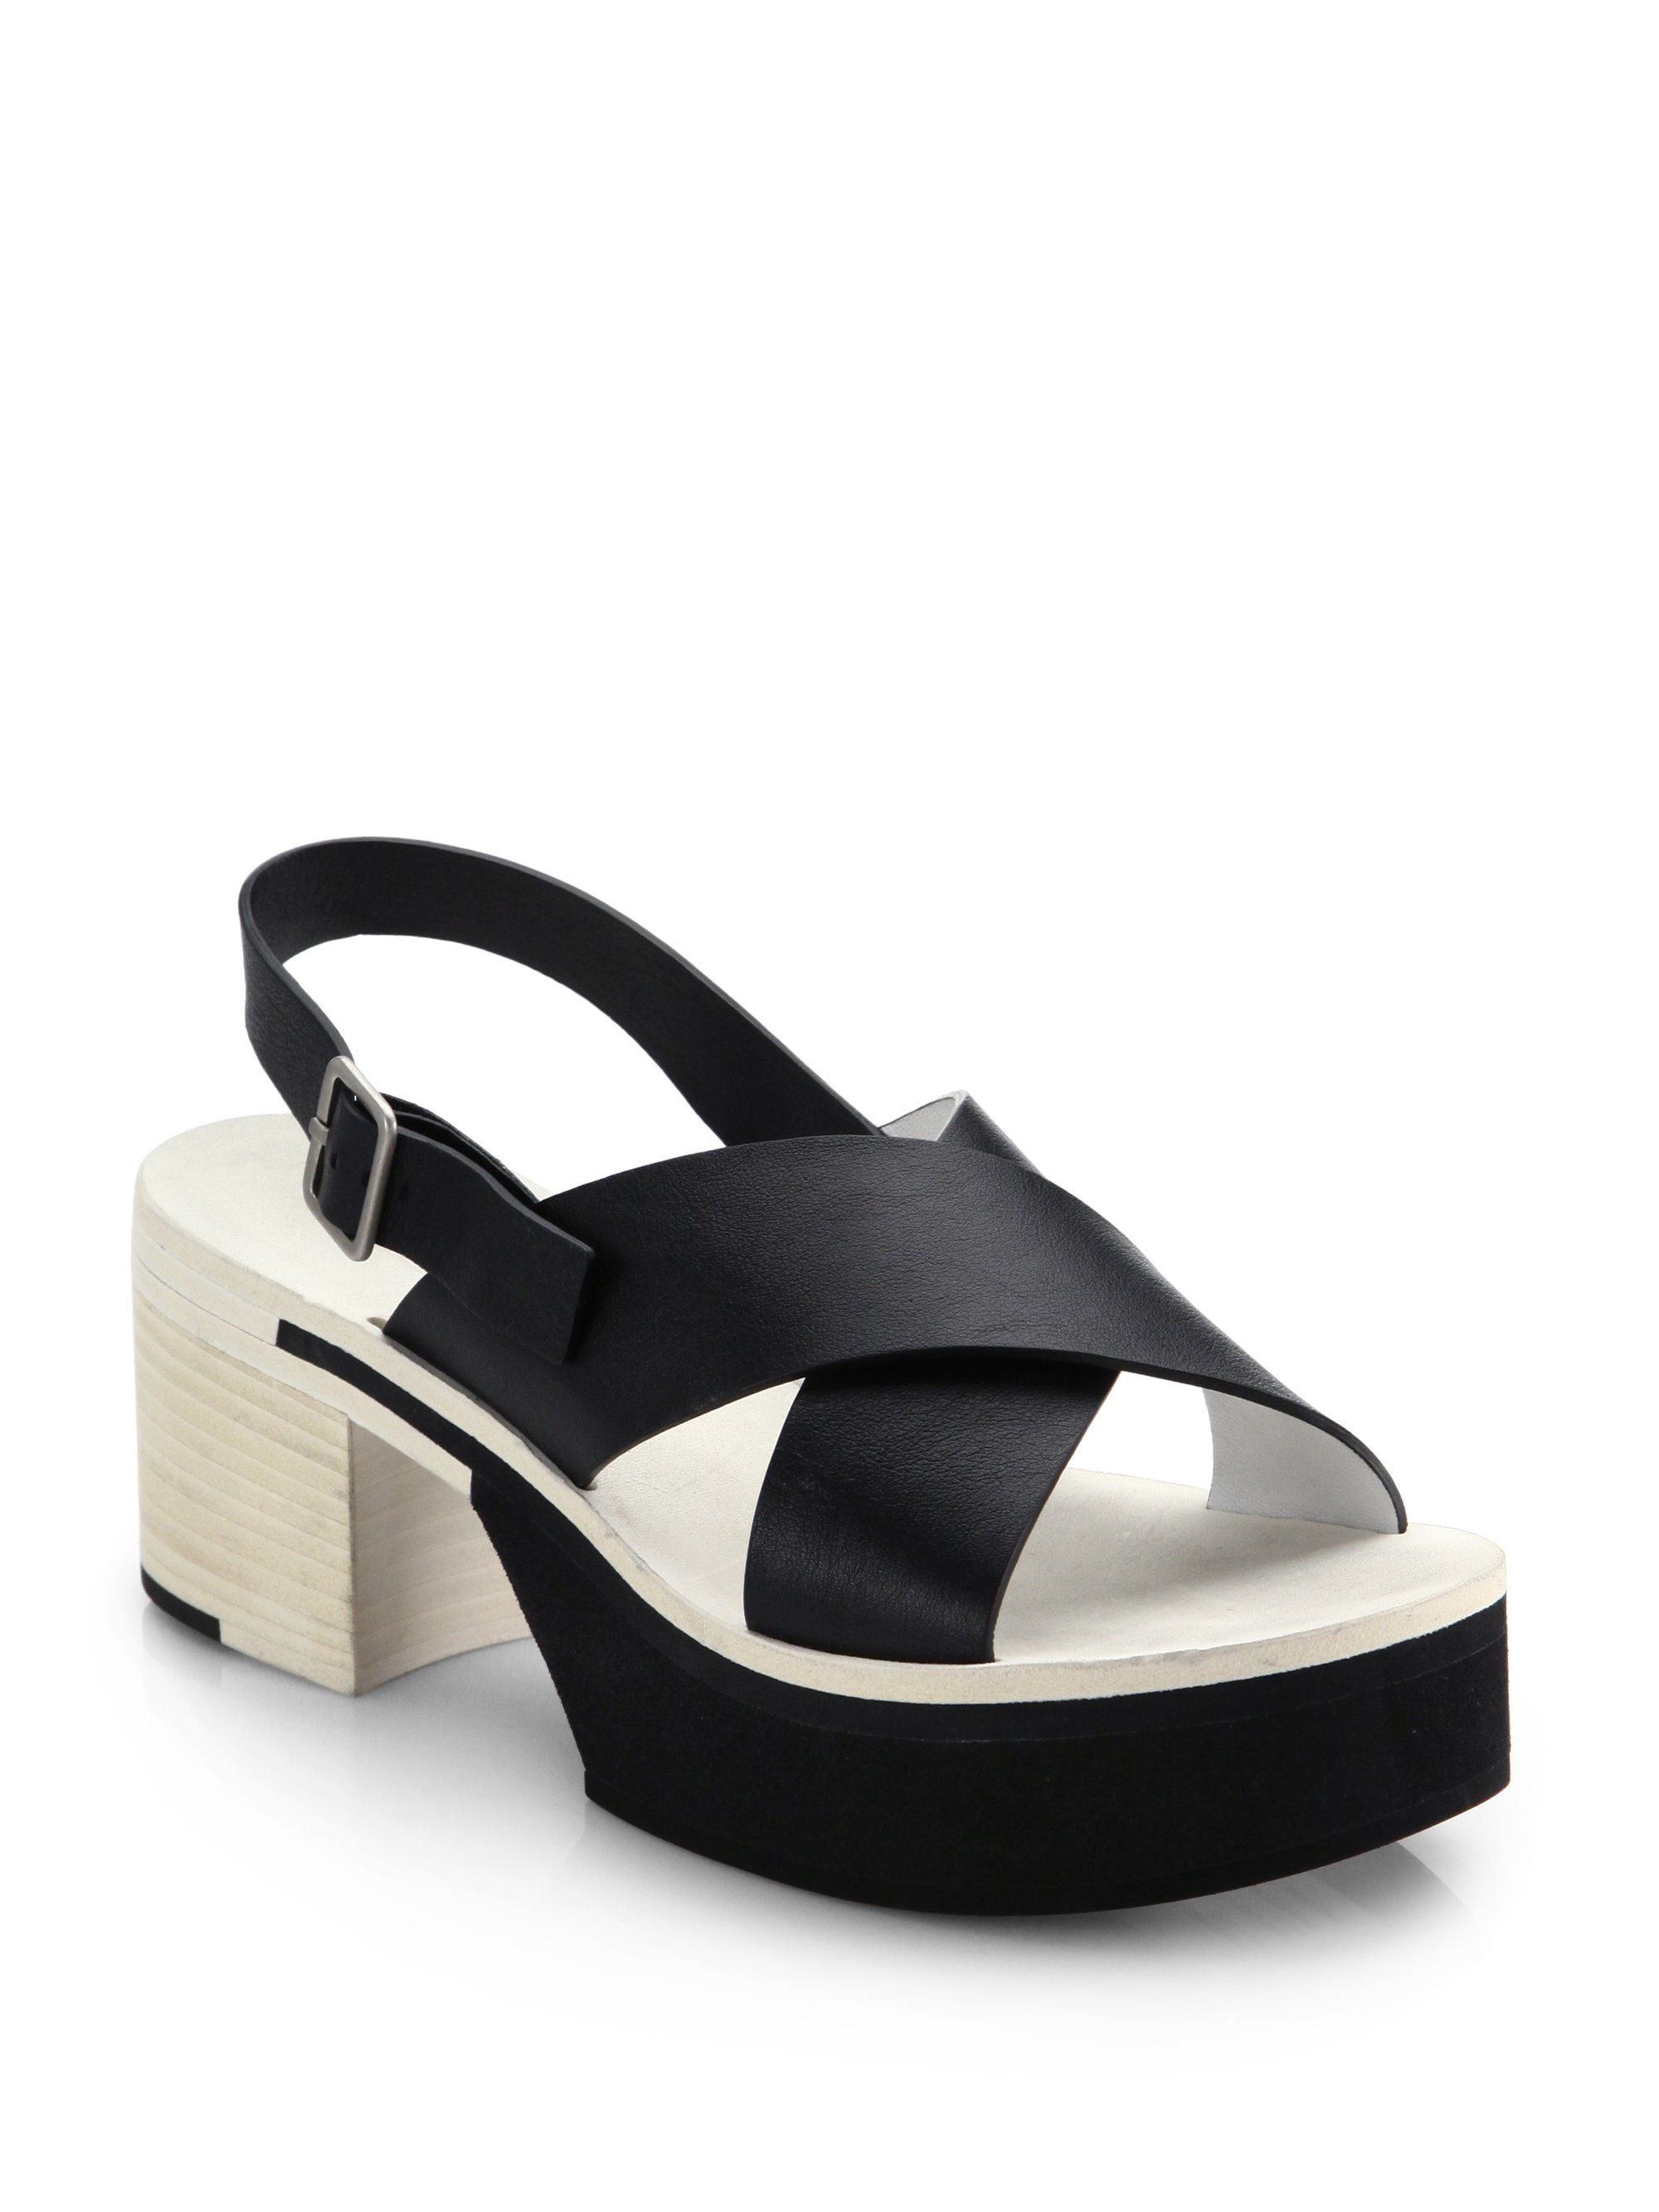 Lyst Jil Sander Leather Criss Cross Sandals In Black